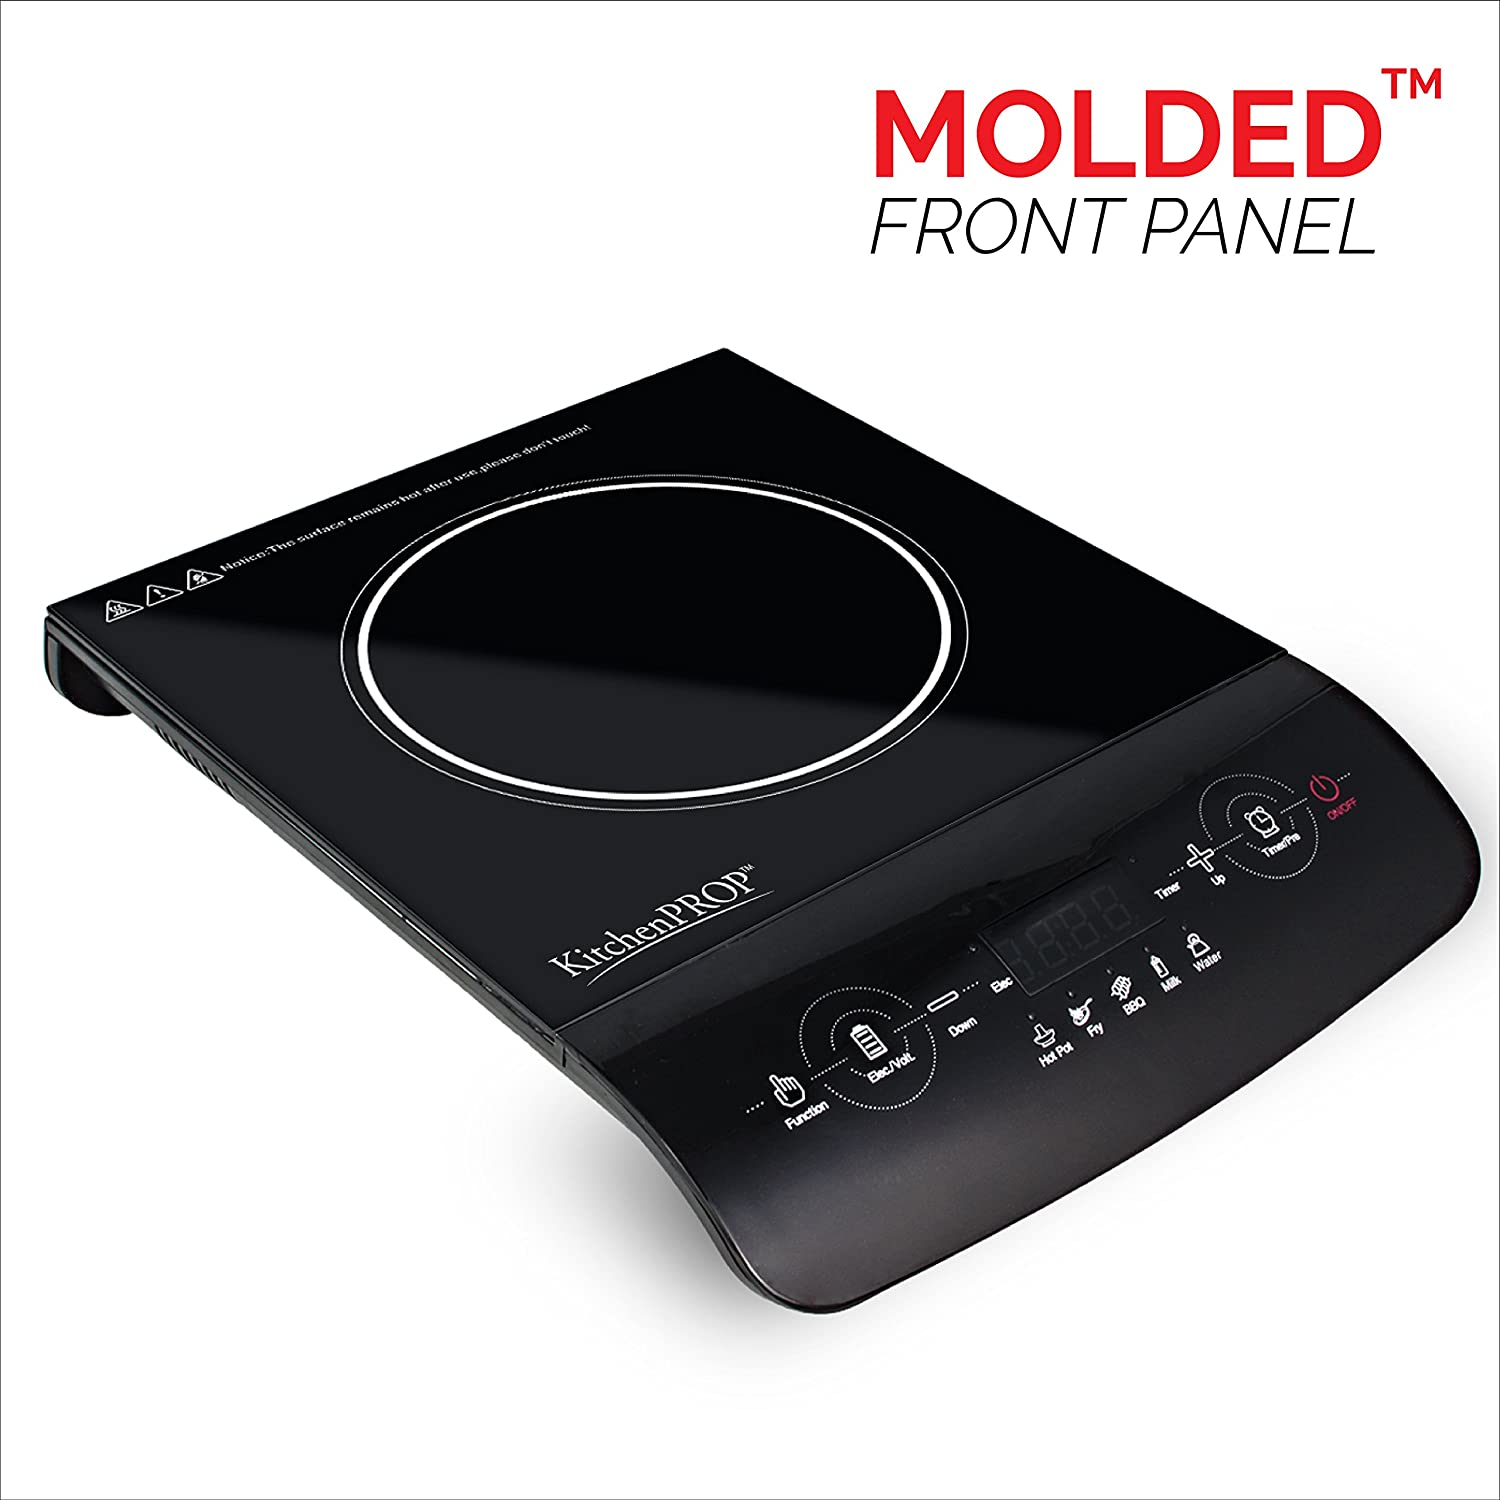 Amazon.com: INDUXPERT Portable Induction Cooktop 1800W with Power ...